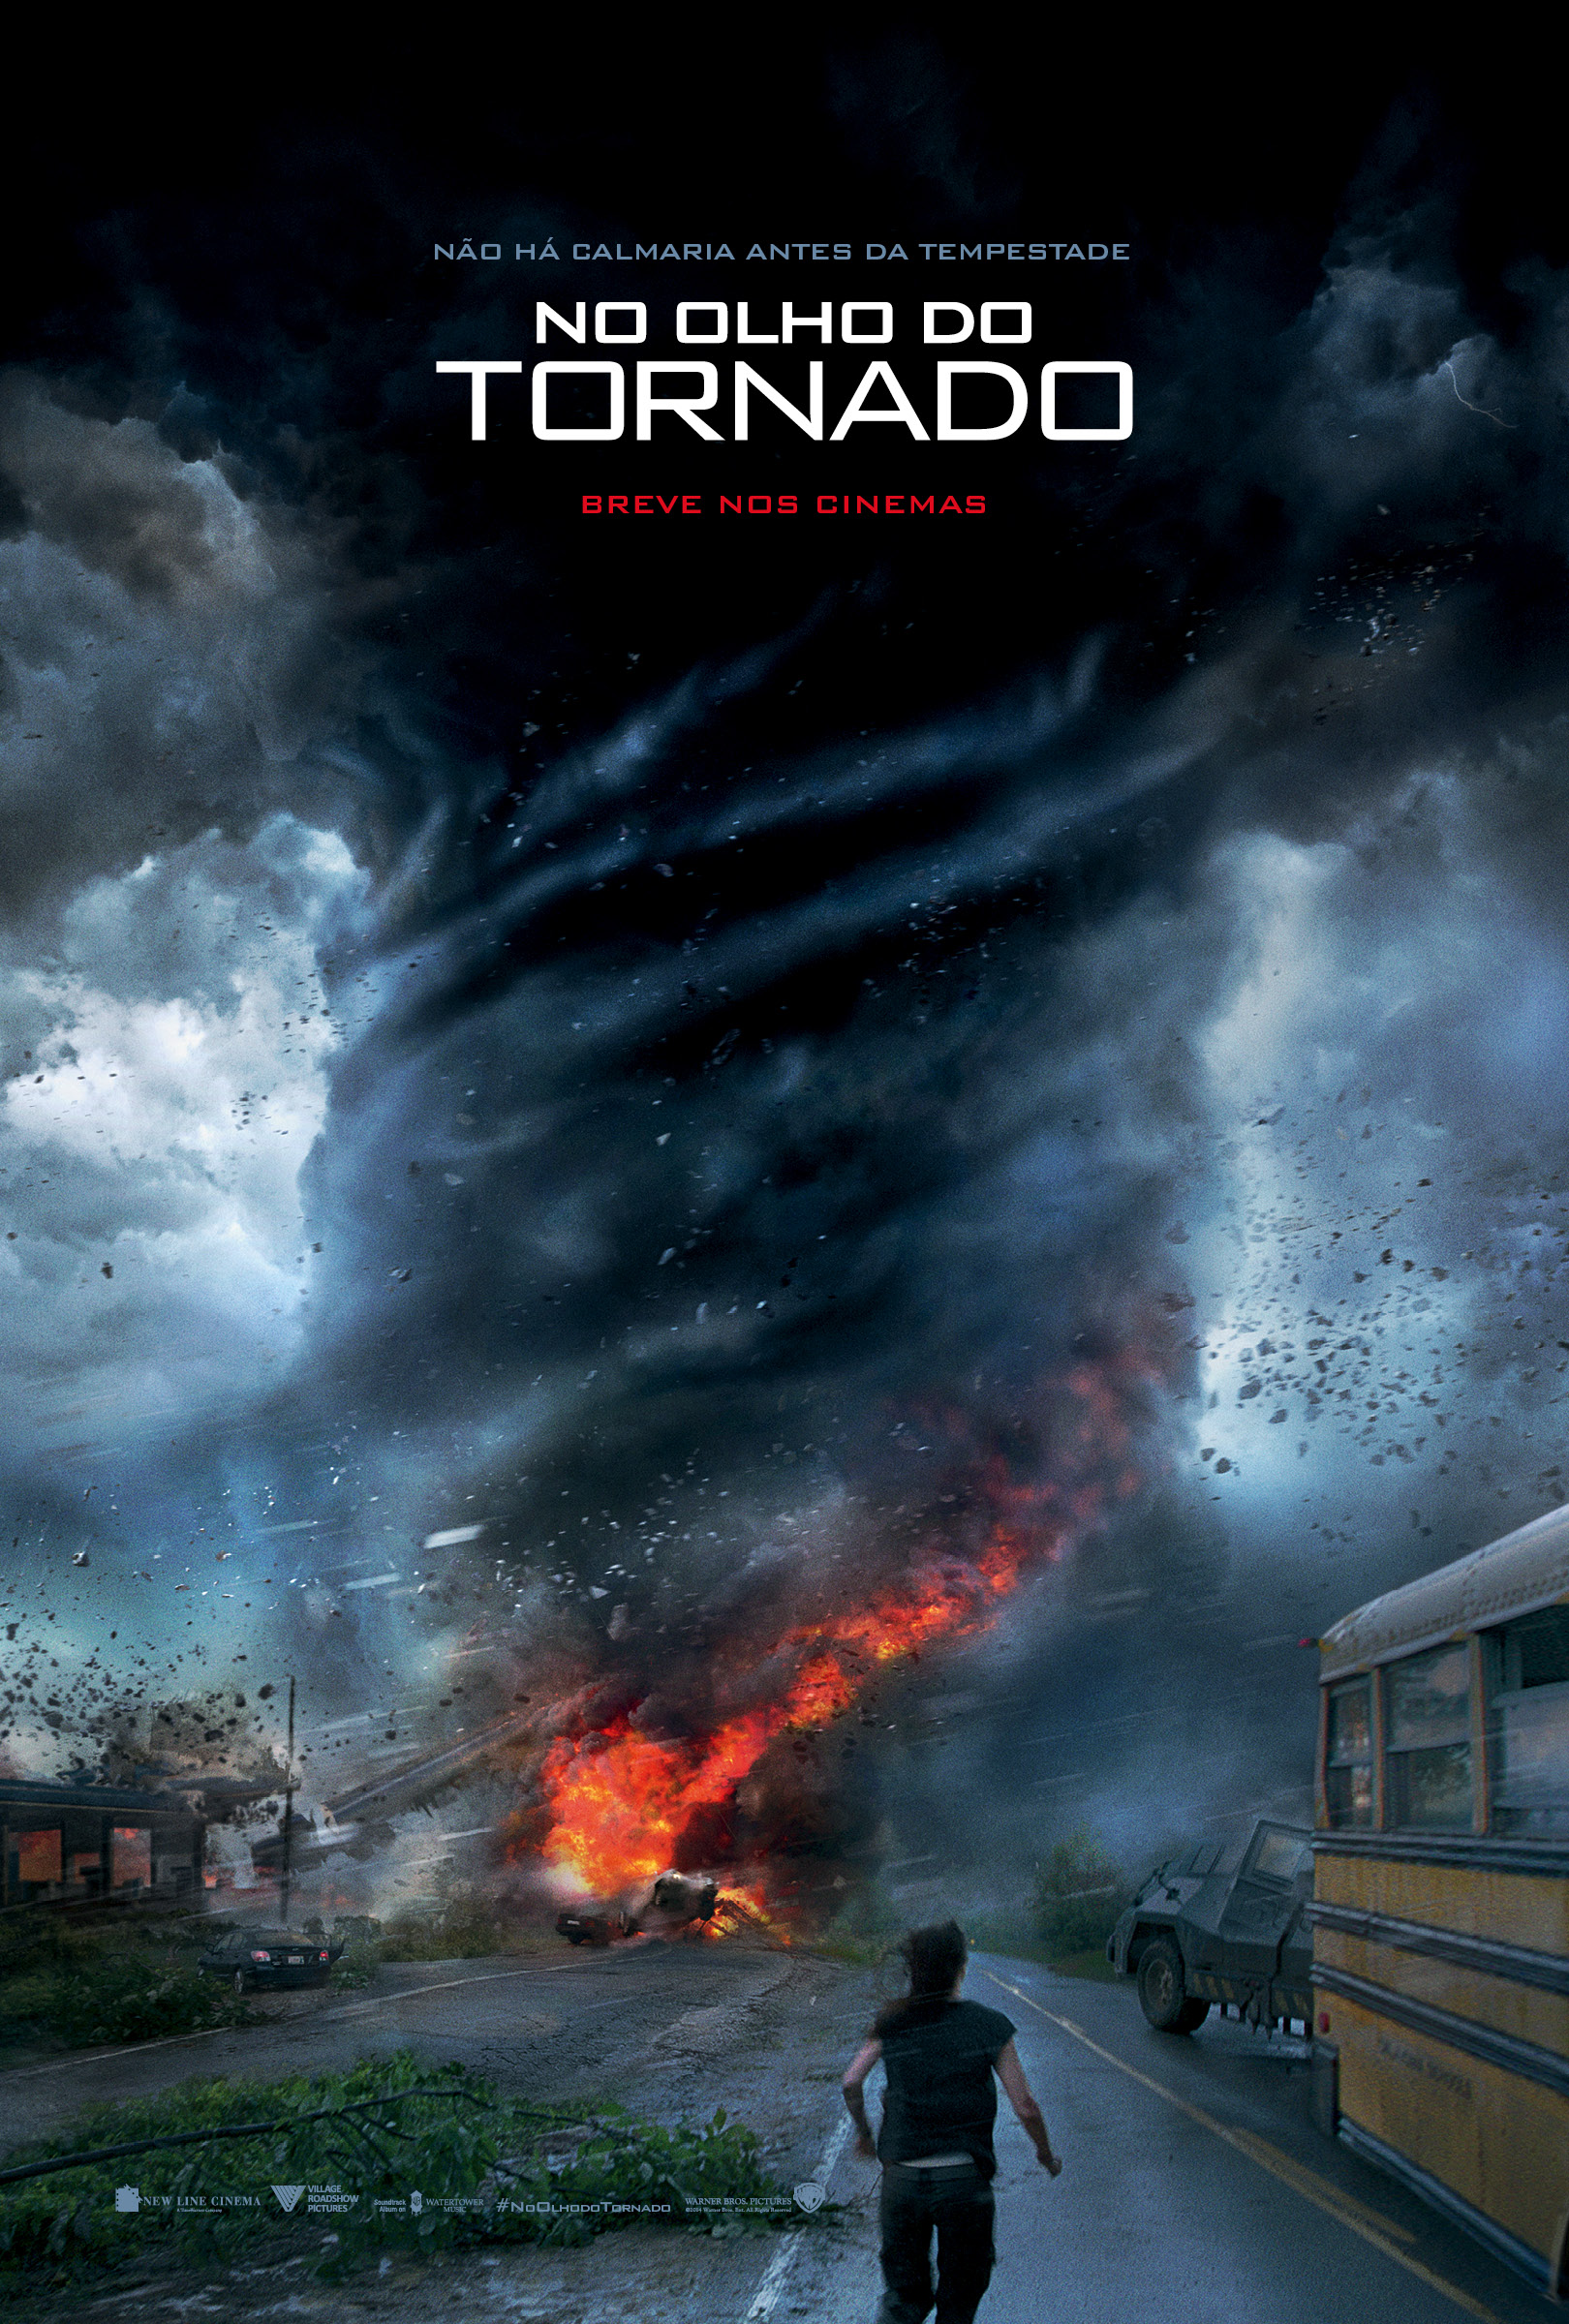 Into the Storm-Official Poster Banner PROMO XXLG-14MAIO2014-01